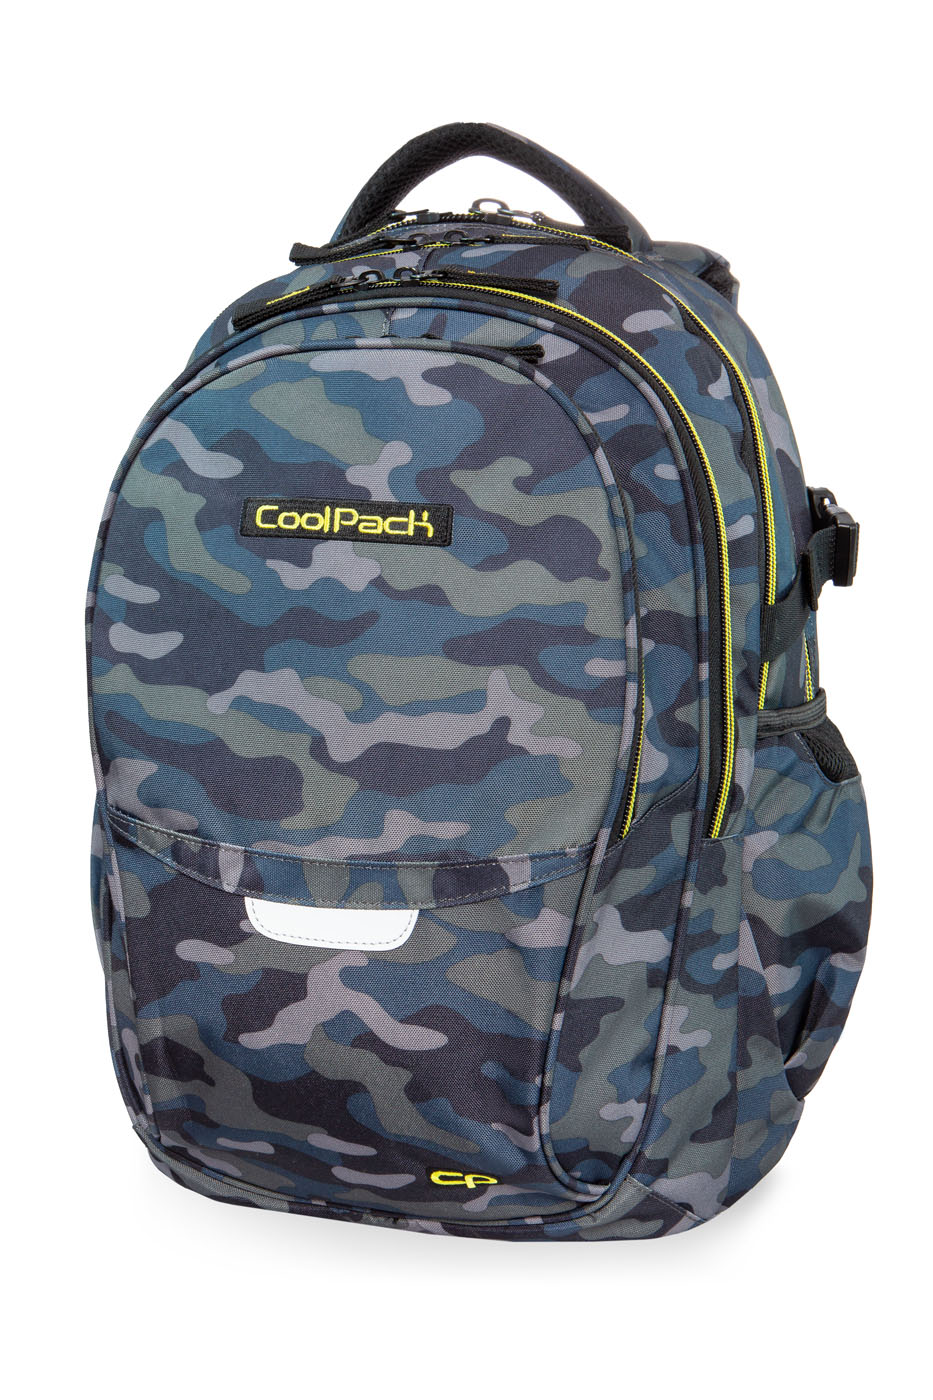 Coolpack   factor  rygsæk   military